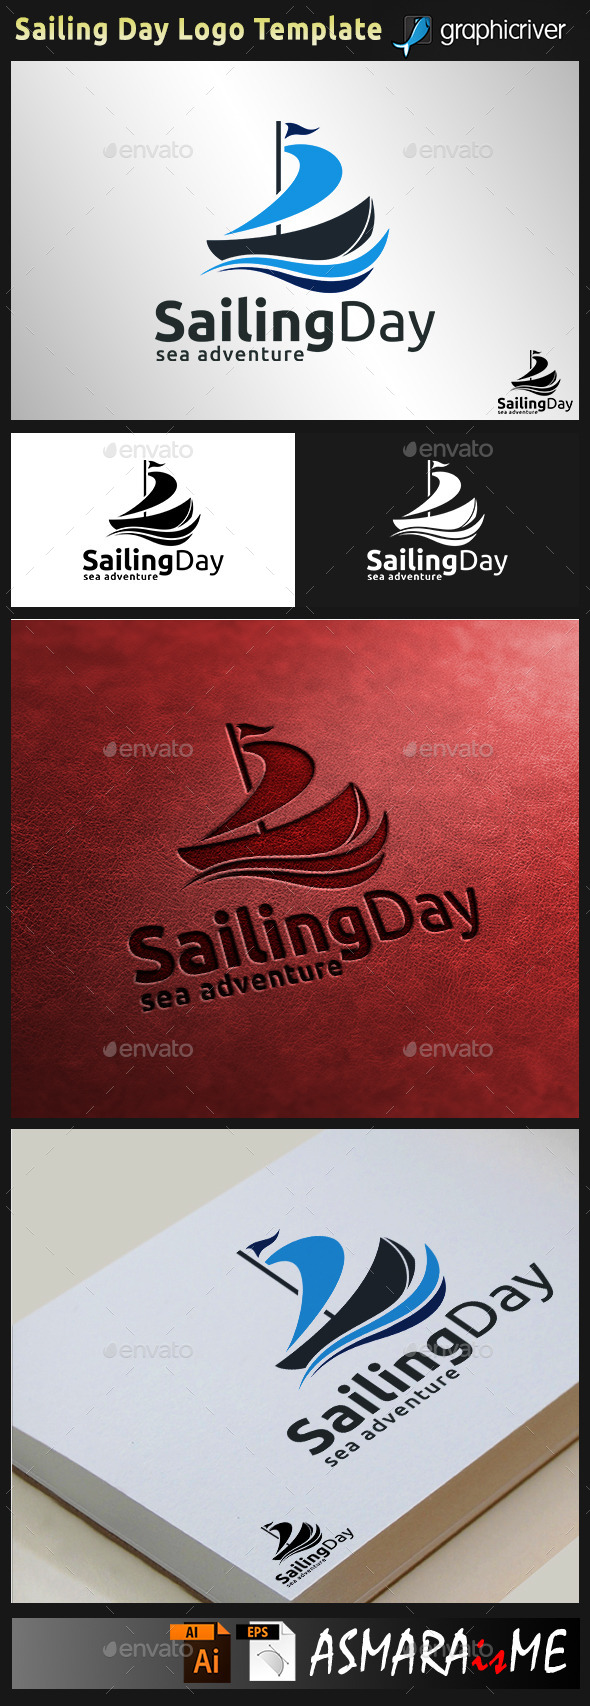 GraphicRiver Sailing Day Sailboat Logo 9494244